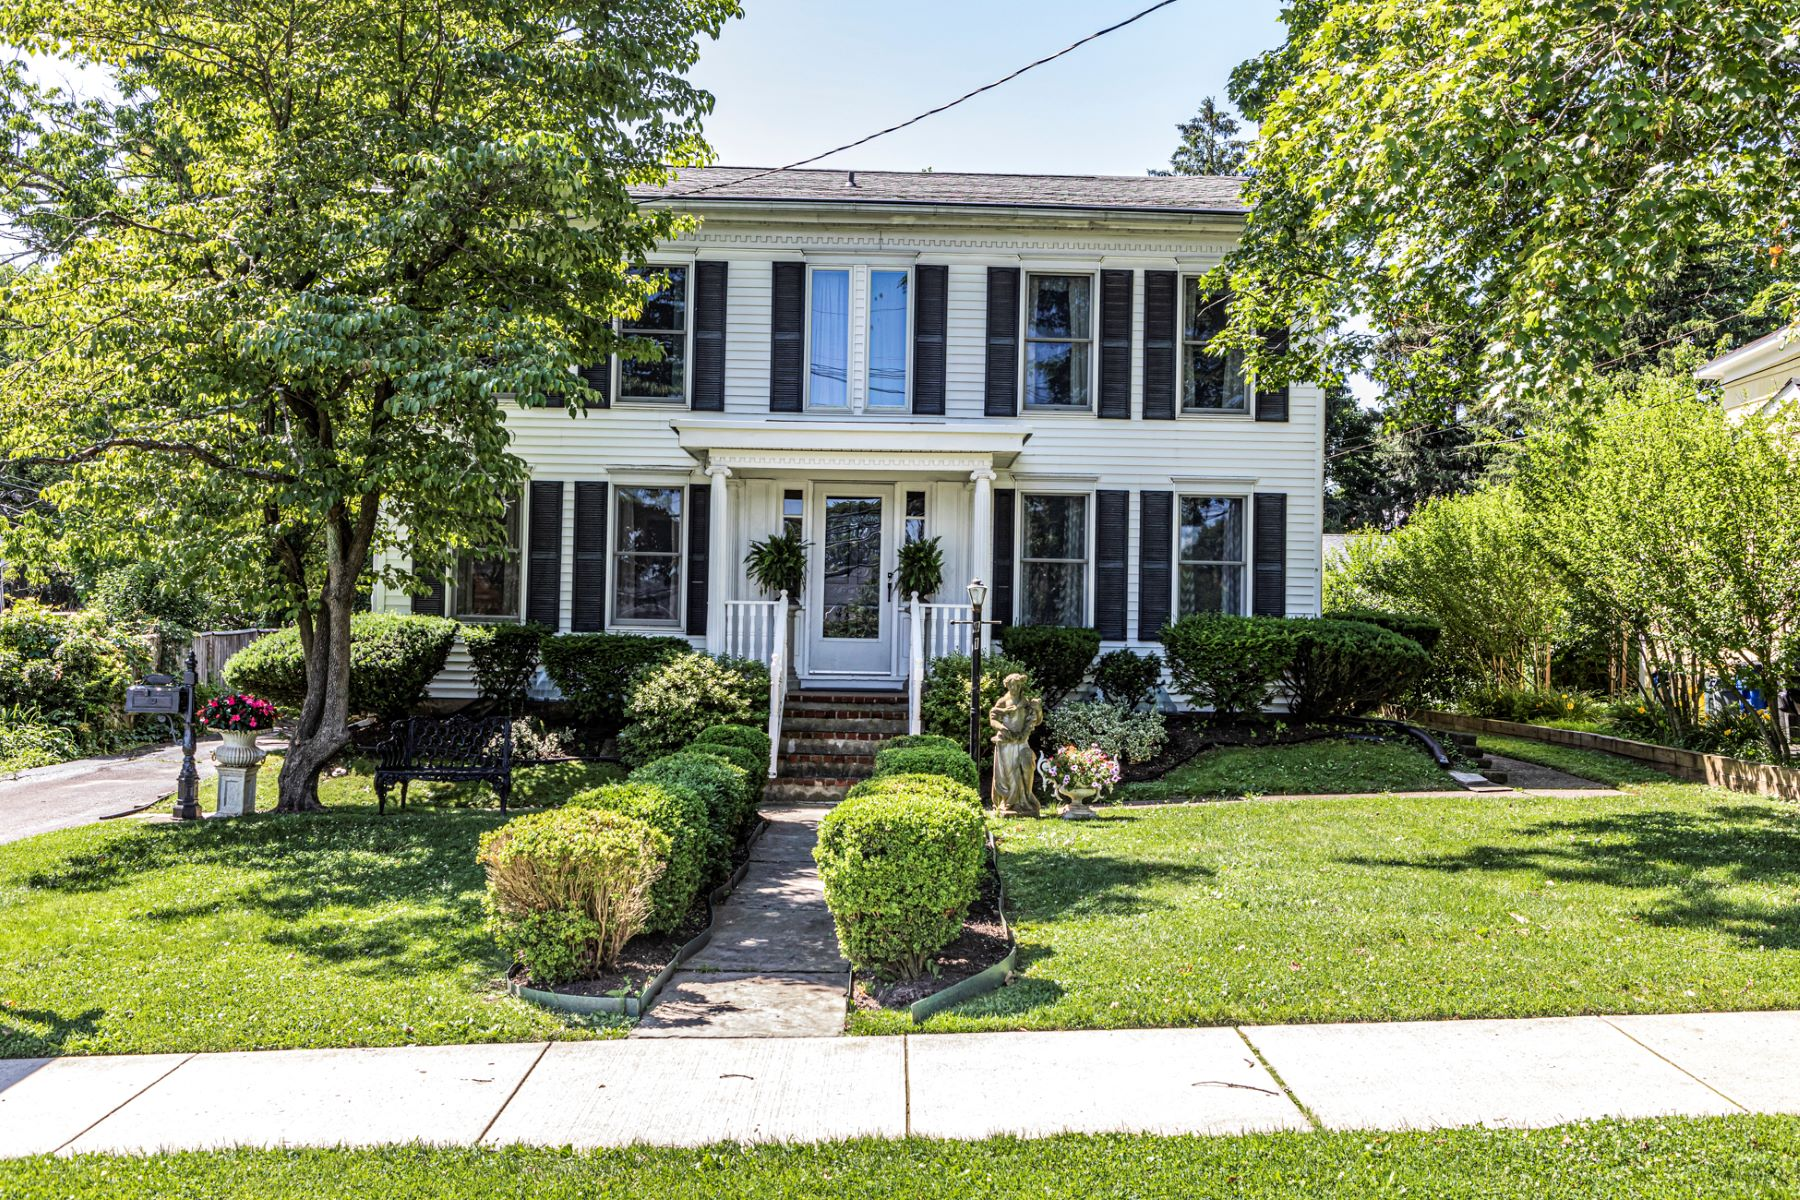 Single Family Homes for Sale at A Heart Of Town Location With Many Possibilities 41 East Broad Street Hopewell, New Jersey 08525 United States